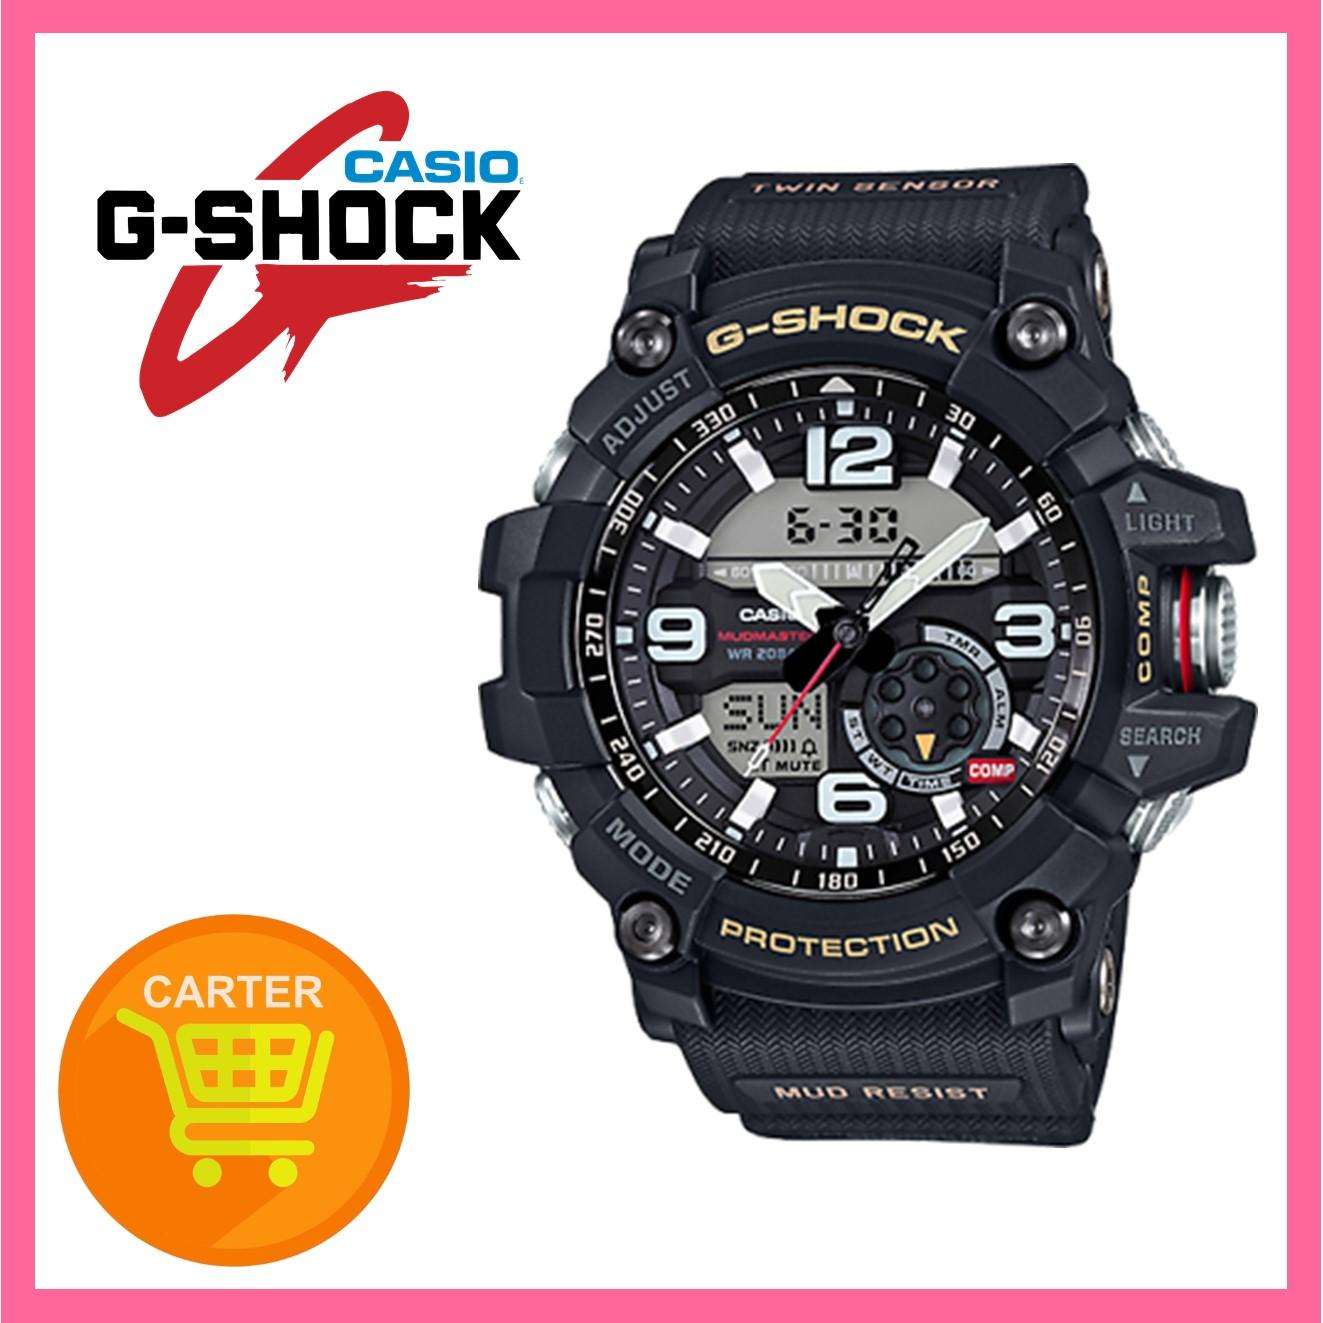 Casio G-Shock Master of G Mudmaster Series Black Resin Strap Watch GG1000-1A